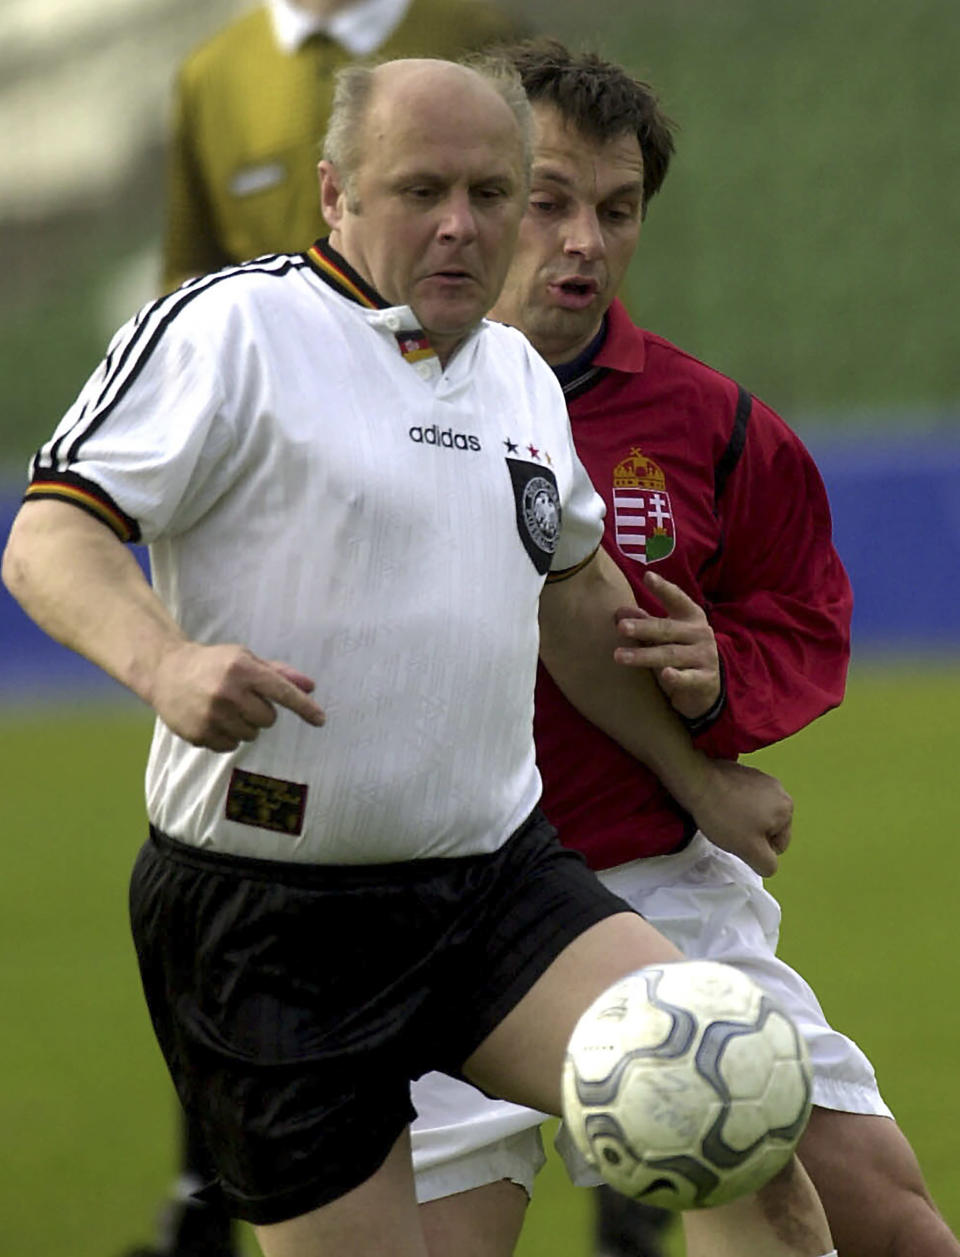 FILE - In this Tuesday April 24, 2001 file photo Hungarian Prime Minister Viktor Orban, right, and German lawmaker Heinz Schmitt fight for the ball during a friendly international soccer match between Hungarian Parliament and German Bundestag in Budapest. Populist Prime Minister Viktor Orban has long used soccer to advance his right-wing politics, and now widespread international criticism of a new Hungarian law that is seen as targeting the LGBT community has turned this month's Euro 2020 tournament into a major stage for his challenge to Europe's liberal values. (AP Photo/MTI, Szilard Koszticsak, File)